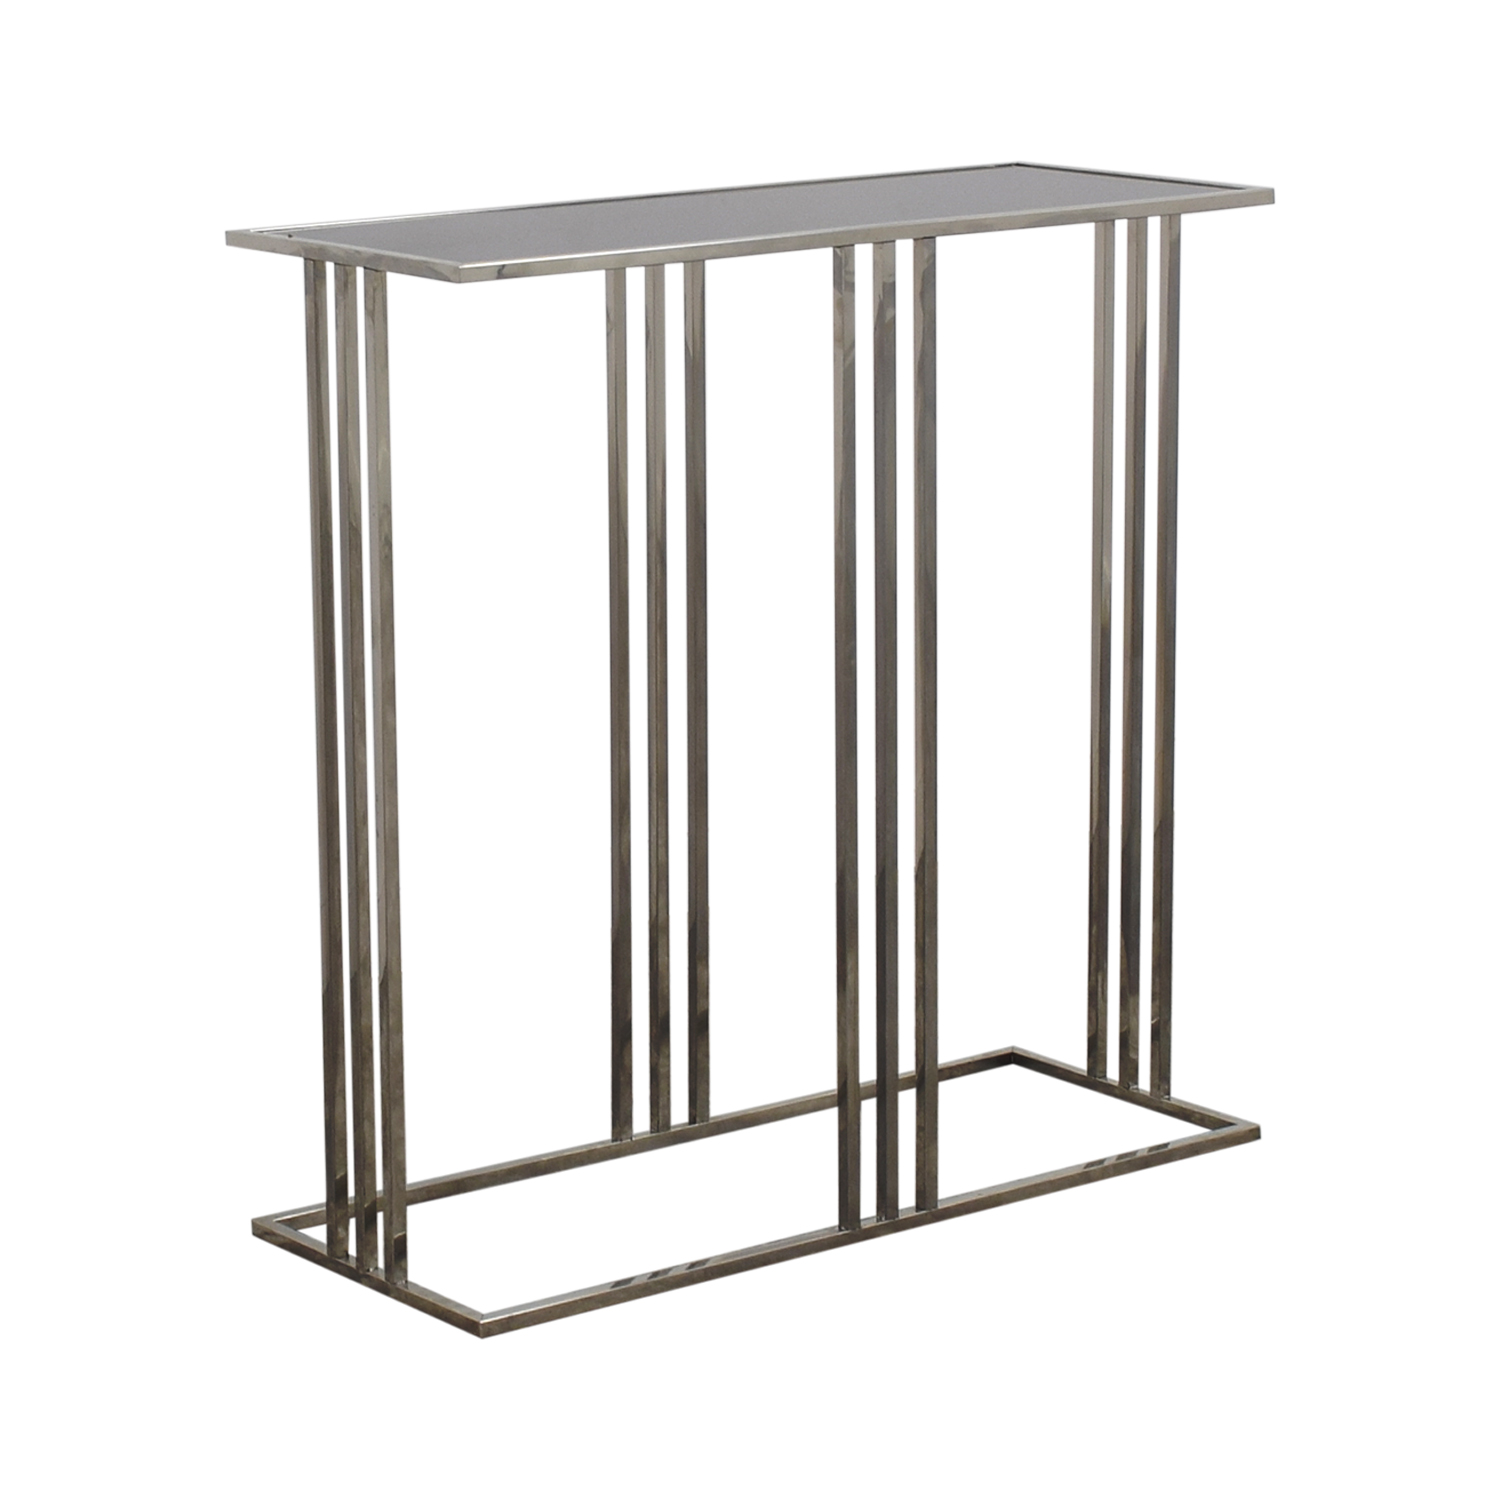 buy HomeGoods Black and Silver Entryway Table HomeGoods Tables